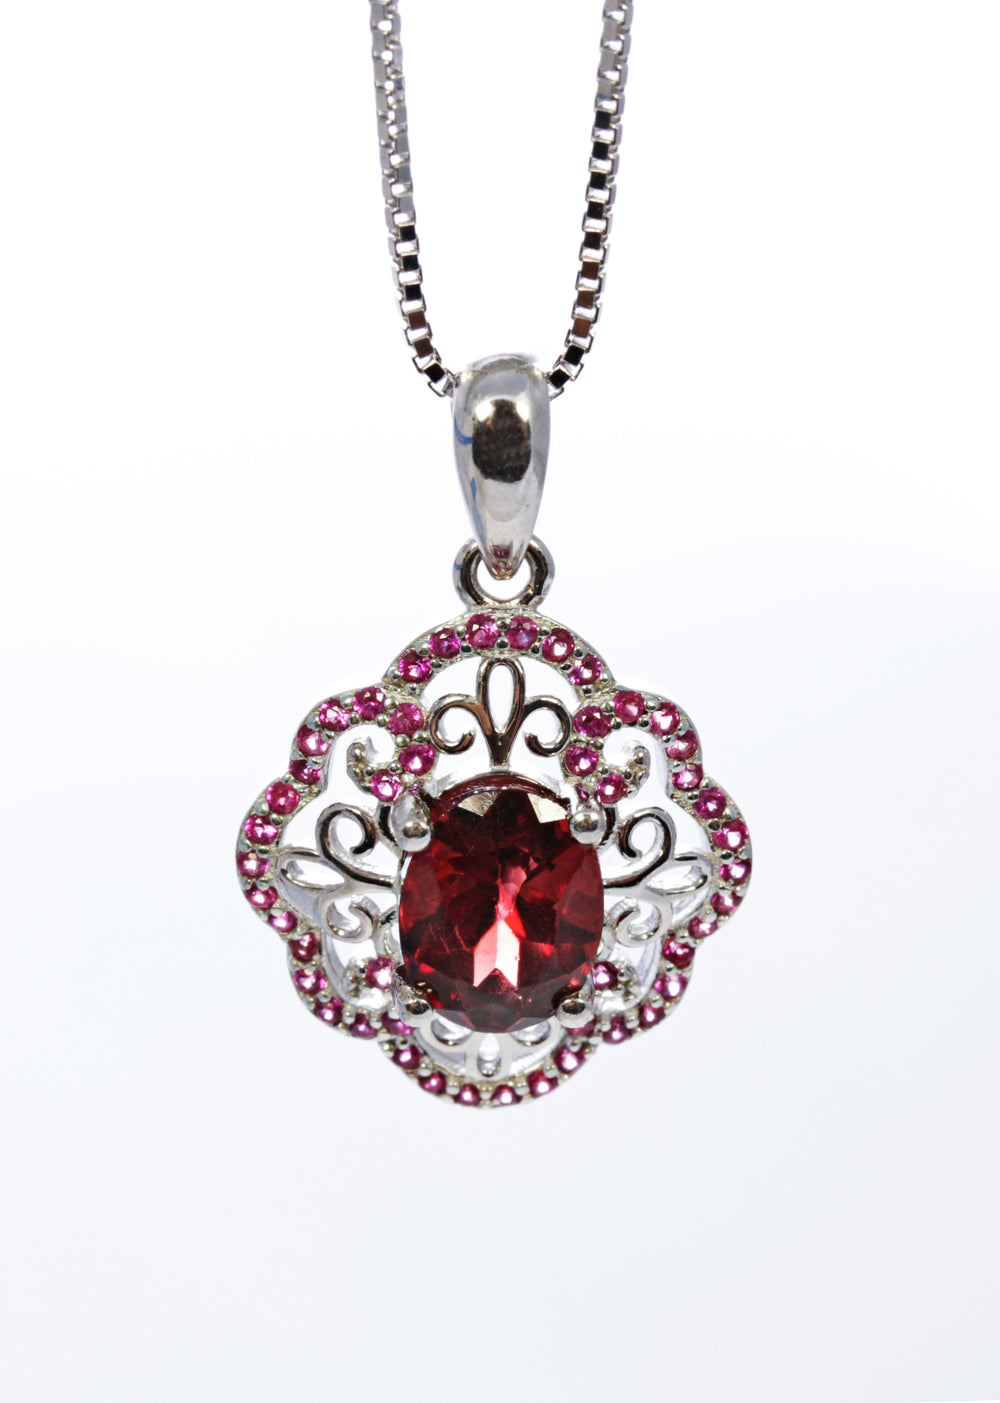 Oval Garnet Pendant with Ruby Accents in Sterling Silver